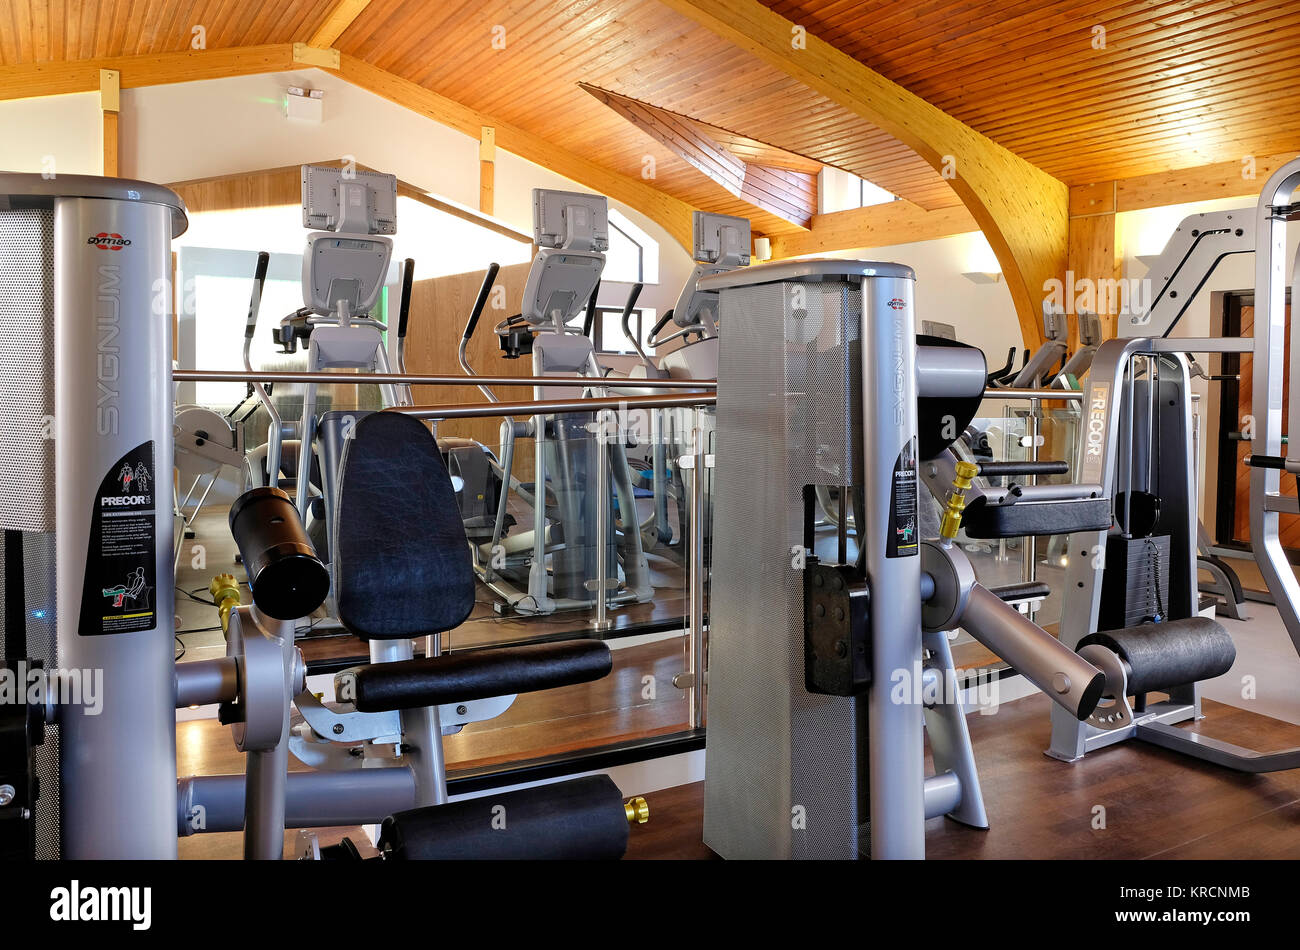 Fitness centre uk stock photos fitness centre uk stock - Westfield swimming pool sheffield ...